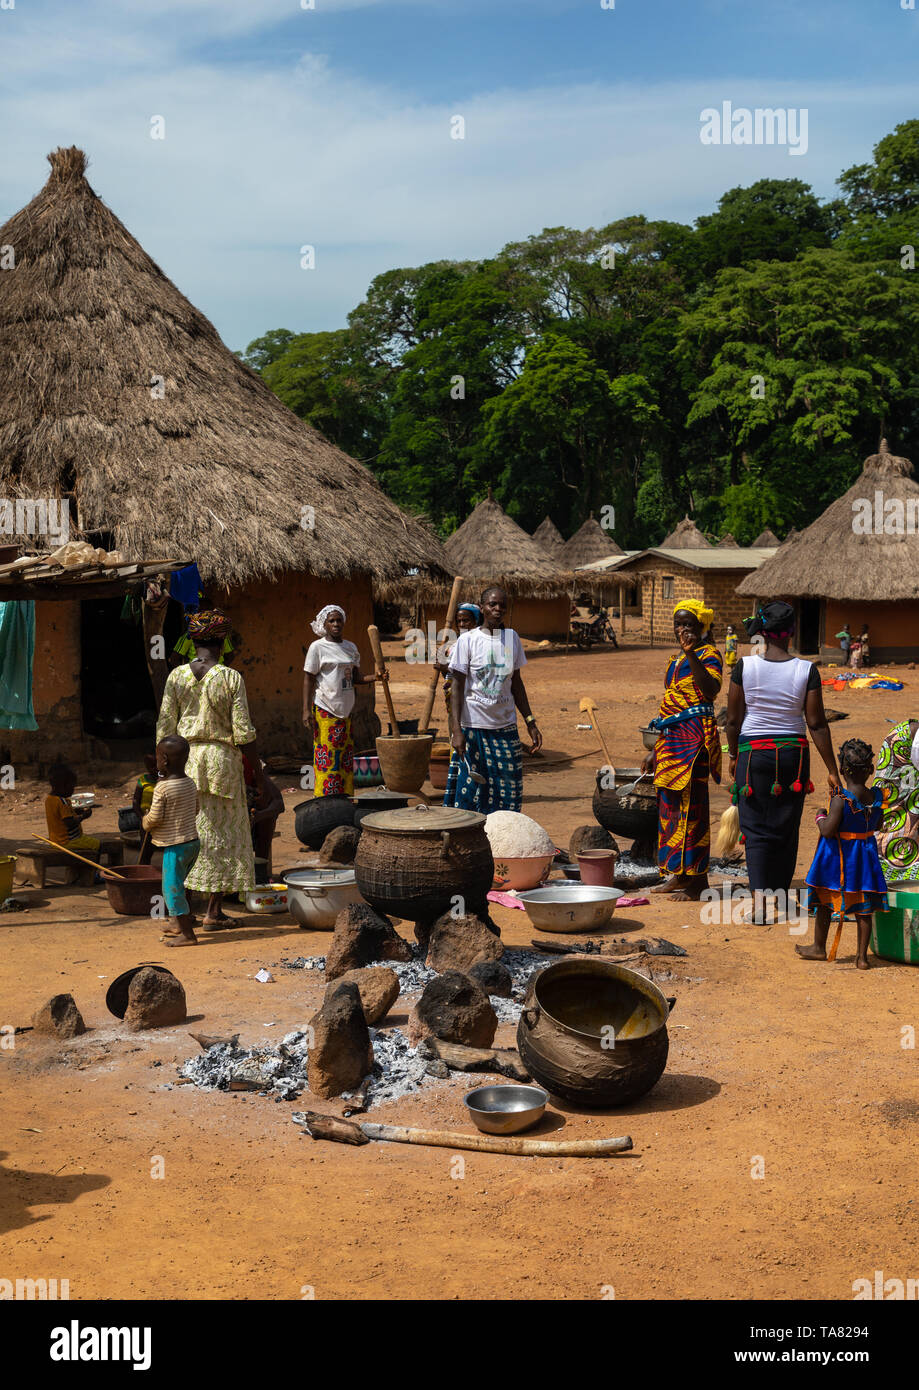 Dan tribe women cooking to celebrate the yam harvest in a village, Bafing, Godoufouma, Ivory Coast Stock Photo